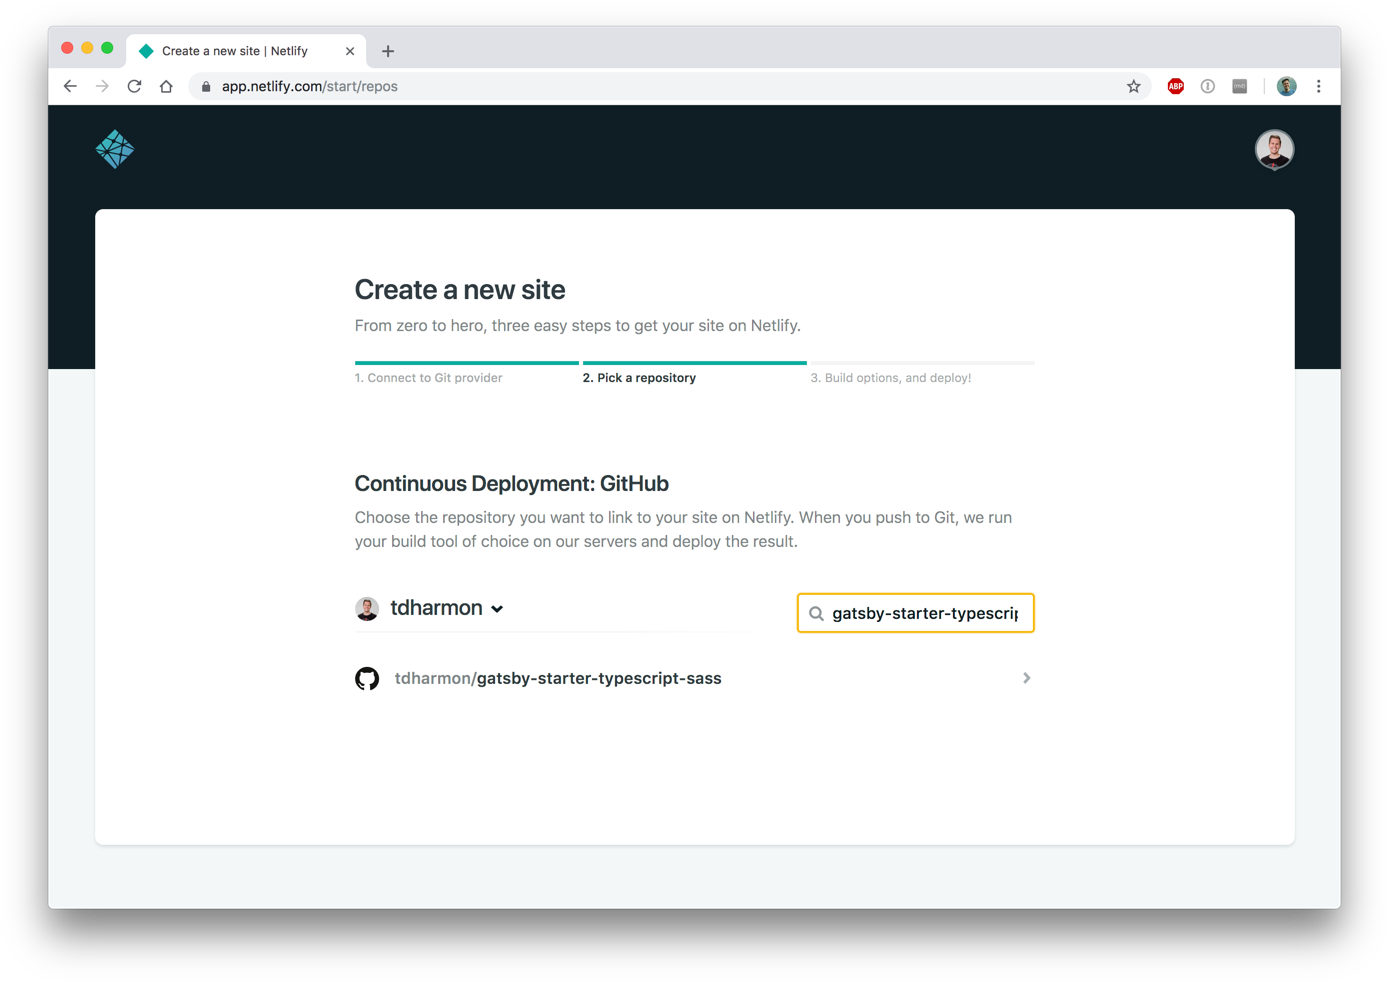 How to quickly deploy a Gatsby site with Netlify: connect a repo